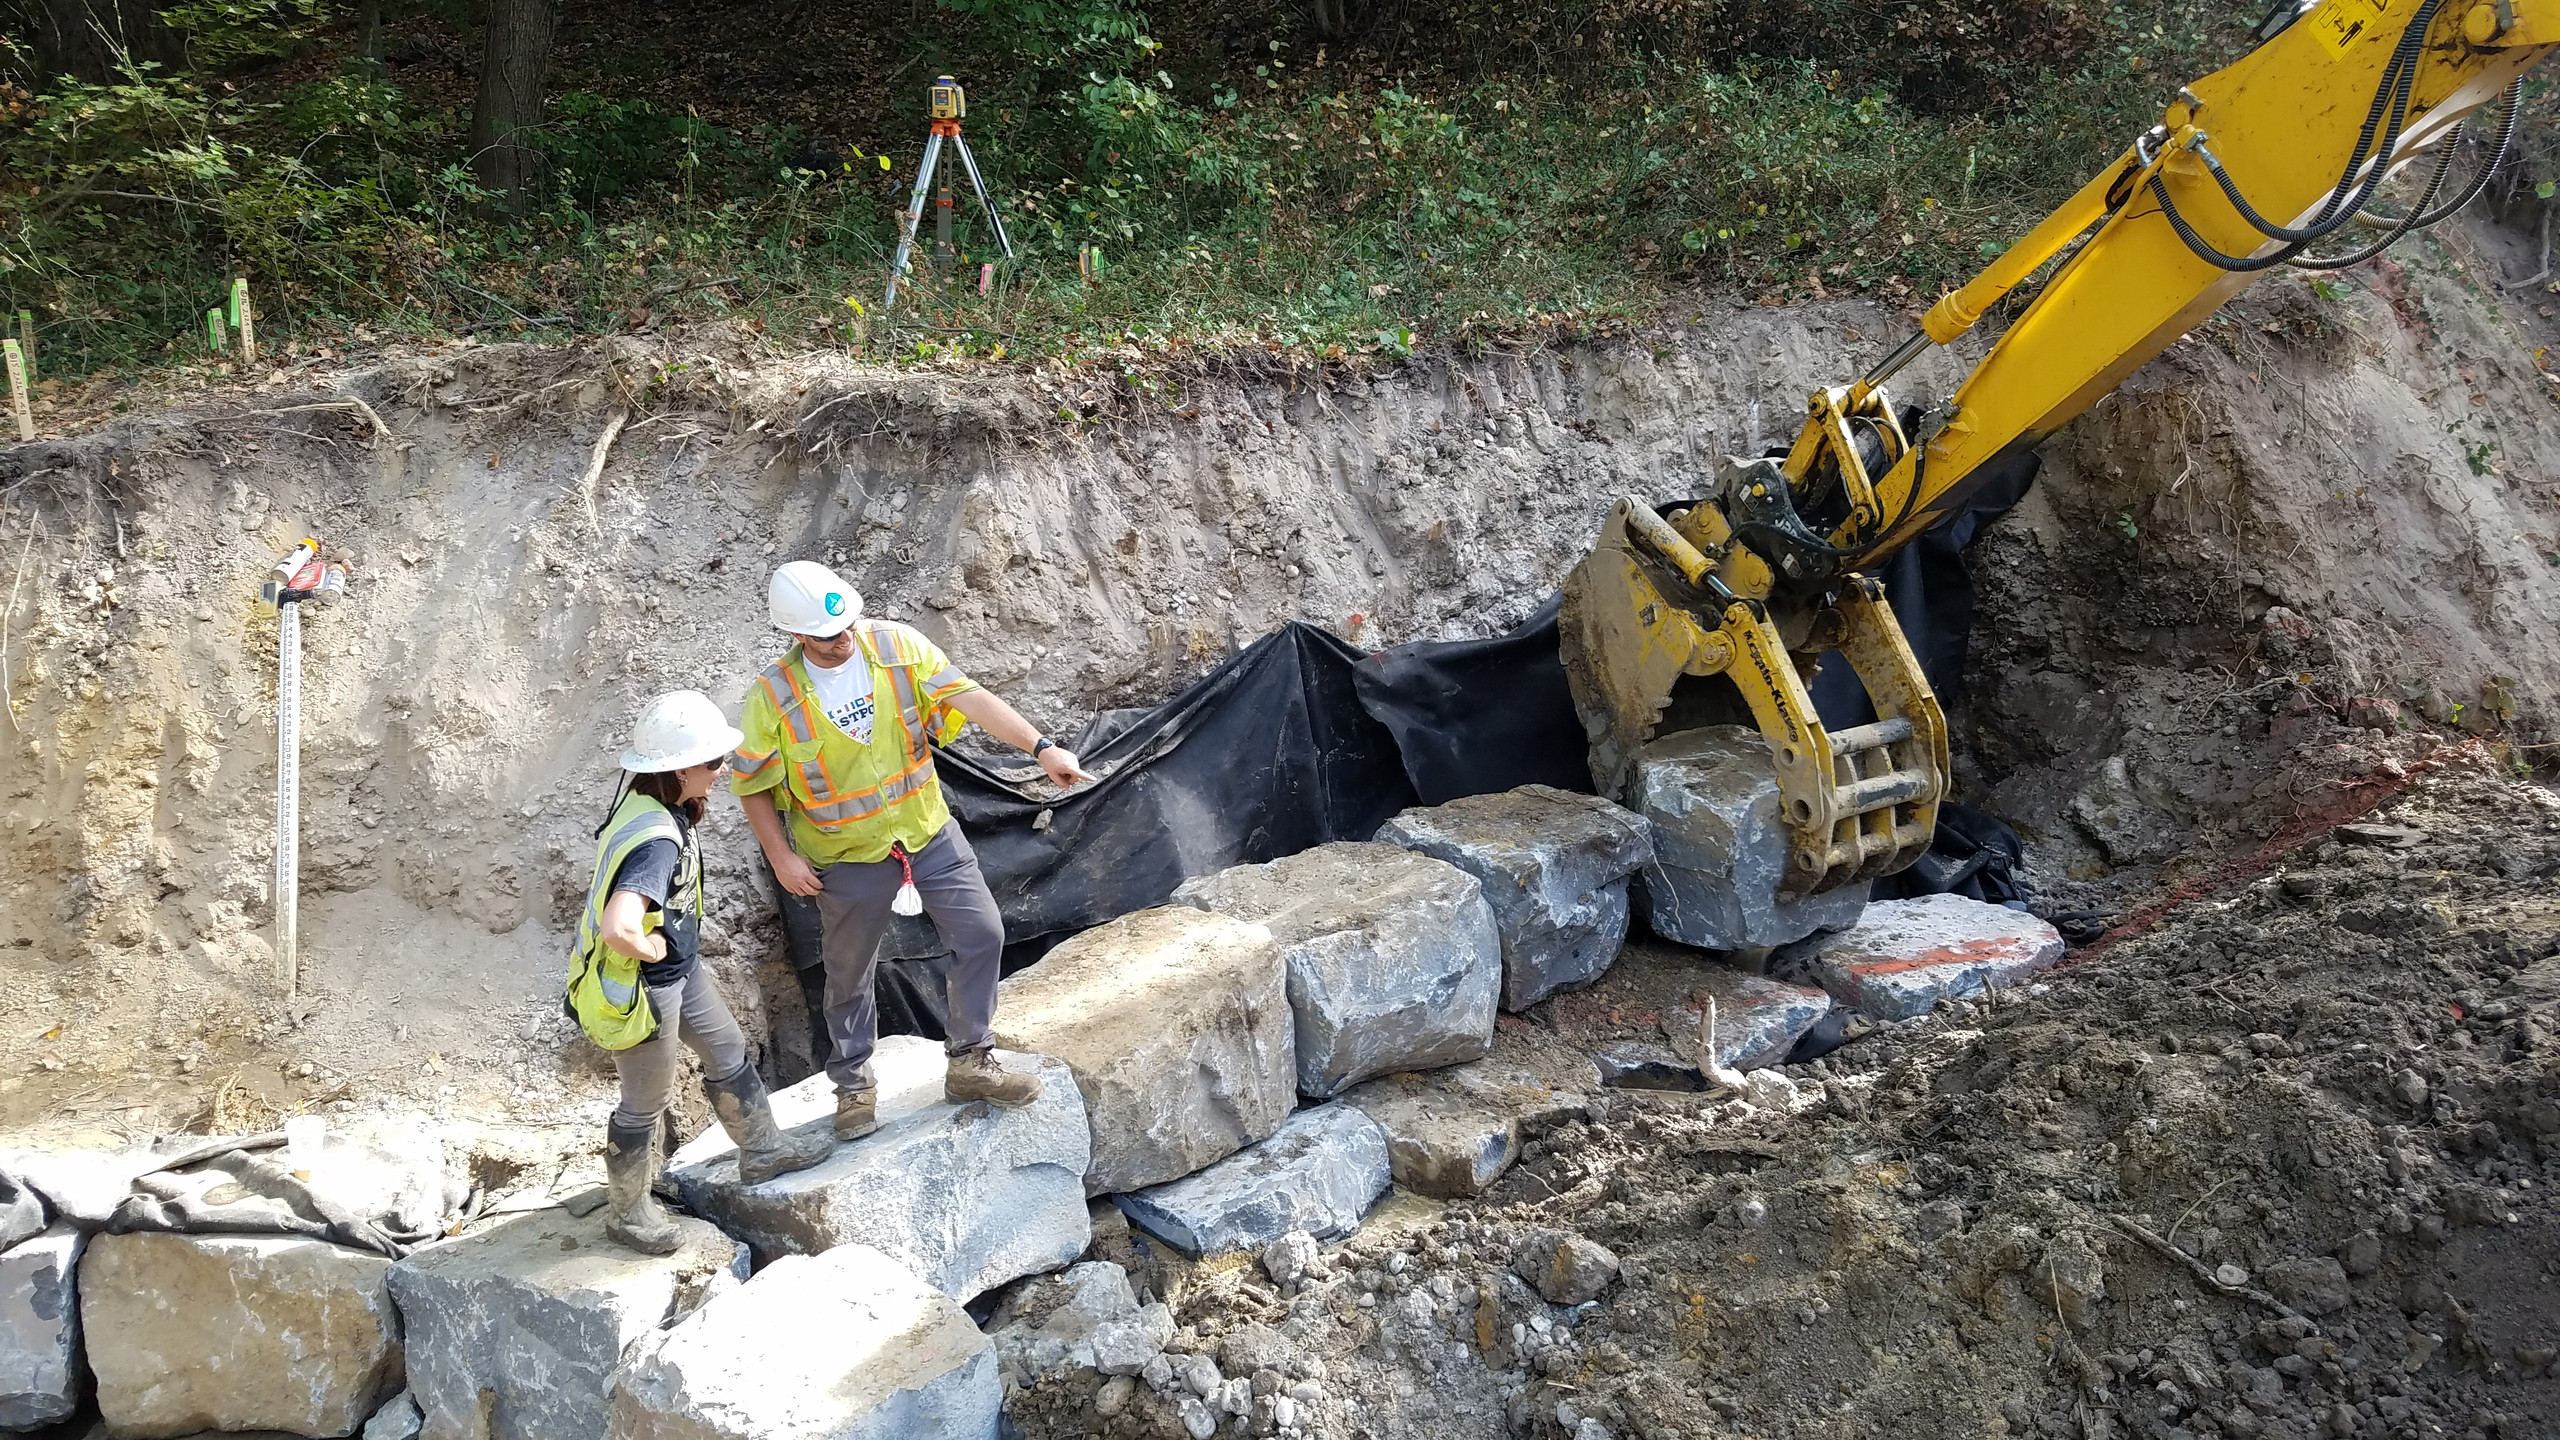 Sean Anger - EQR crew members are installing a Step Pool Sequence on a stormwater fed tributary of Barnaby Run in Temple Hills, MD.  The work is associated with WSSC's initiative to stabilize select stream reaches in effort to protect existing Sanitary Sewer assets.